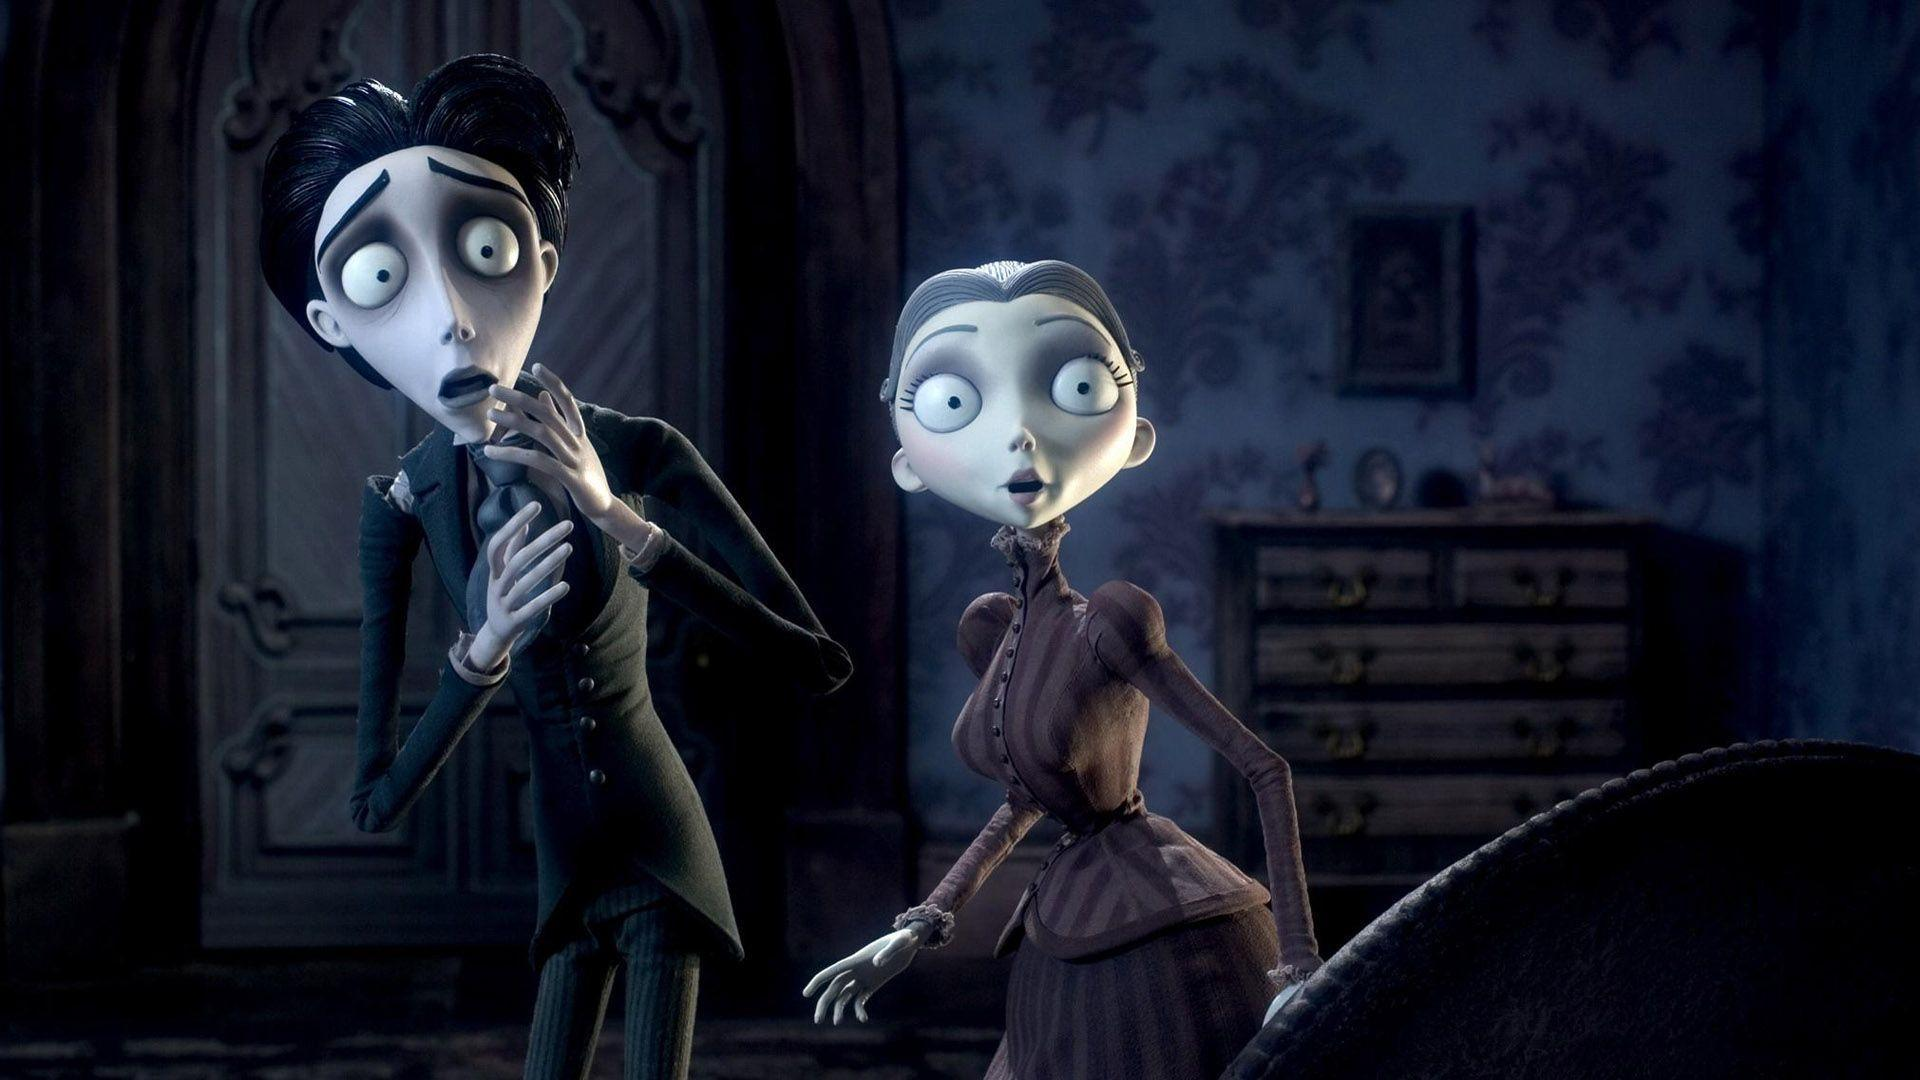 corpse bride movie wallpapers - photo #9